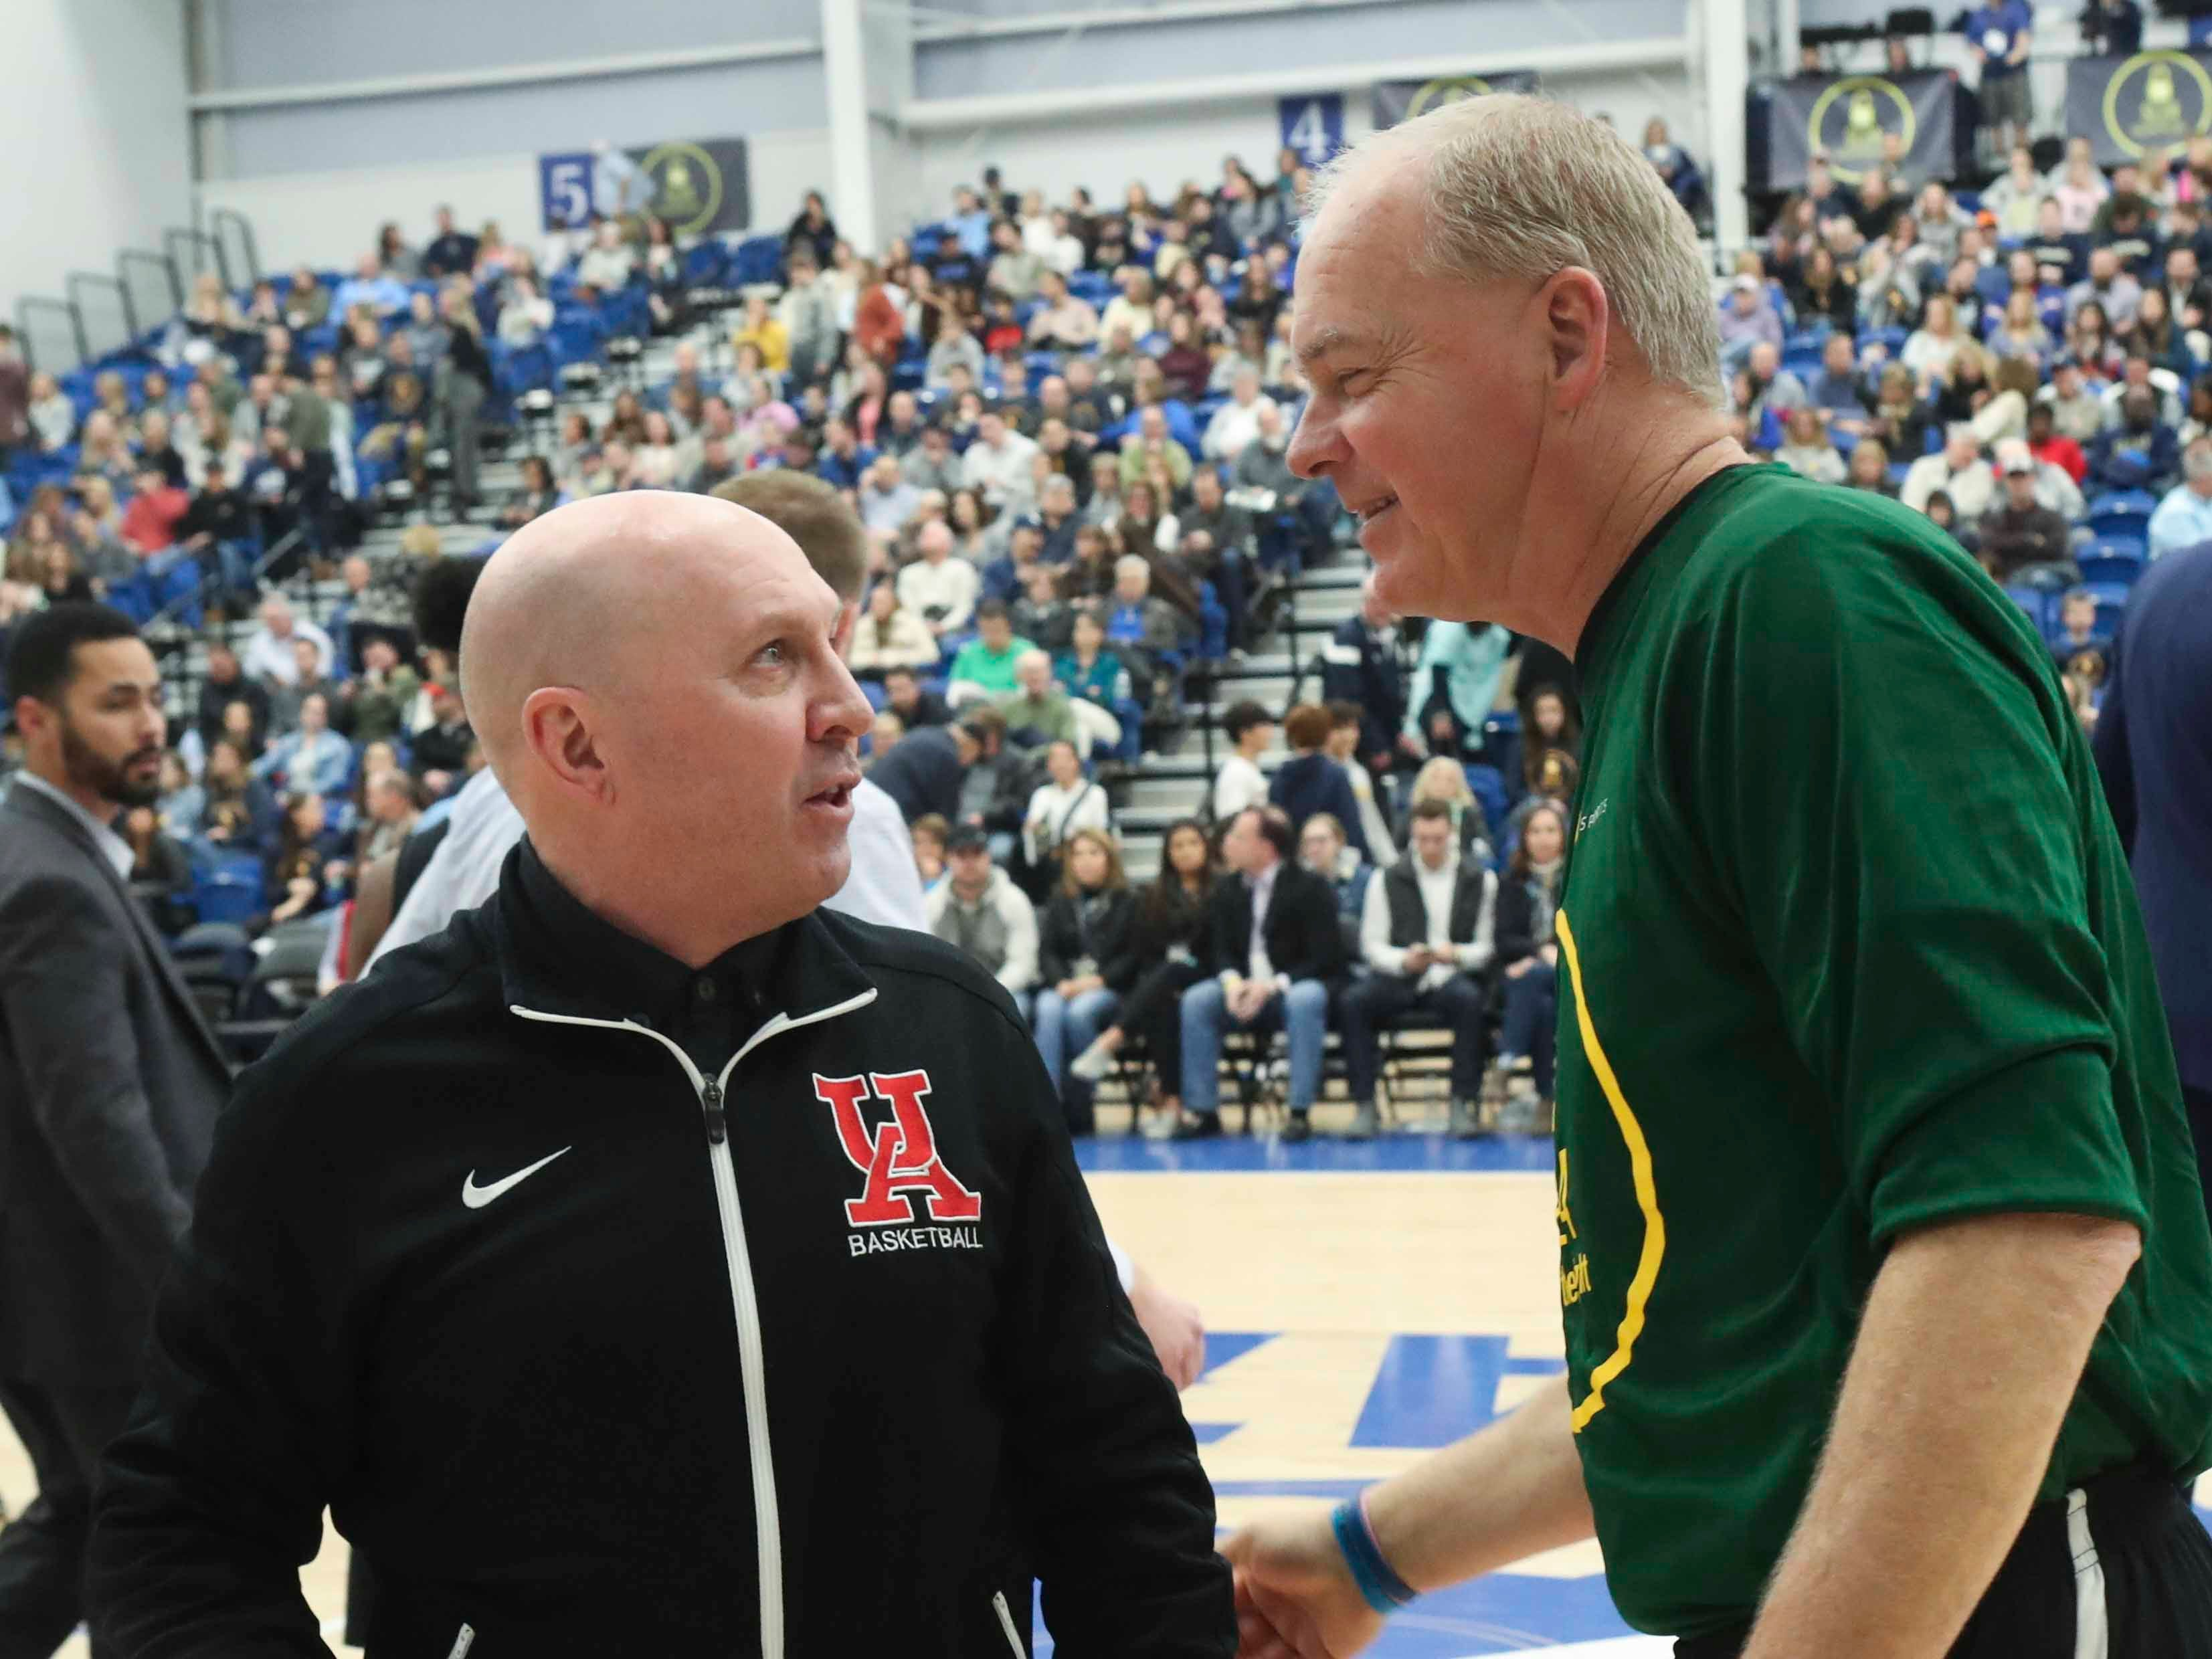 Ursuline coach John Noonan greets his St. Mark's counterpart Jim Freel after their teams competed in the SL24 Memorial Basketball Classic at the 76ers Fieldhouse in Wilmington Friday.